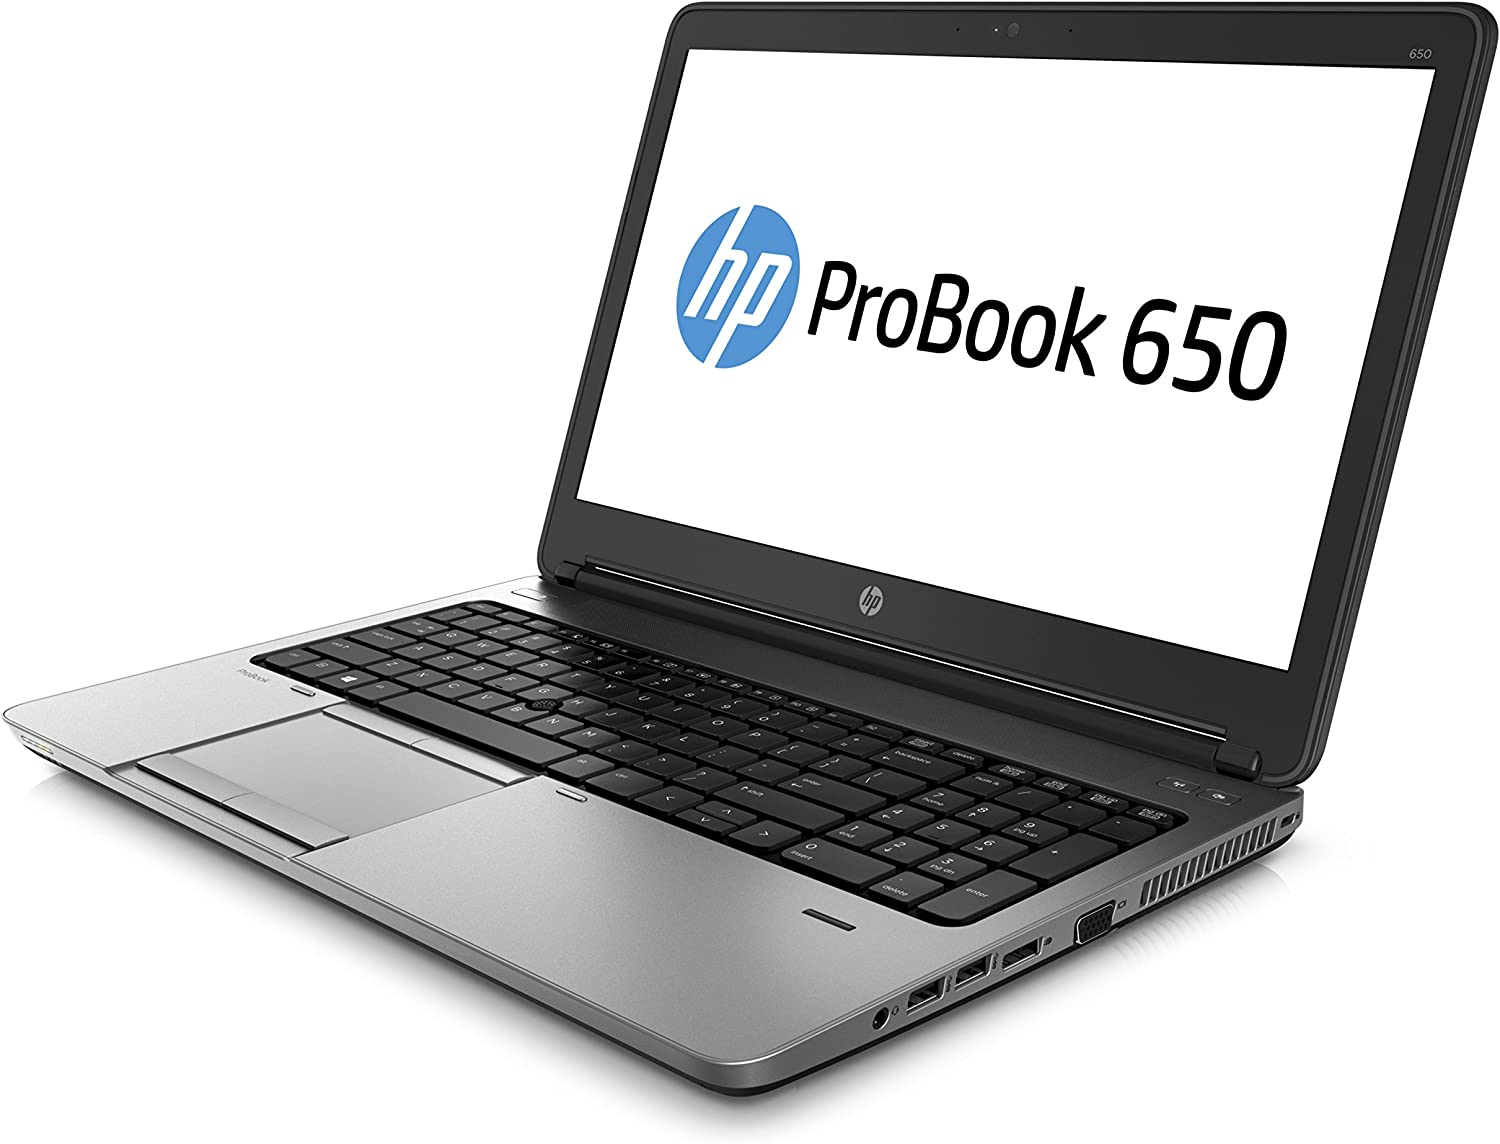 HP ProBook F2R75UT 15.6-Inch Laptop (2.4 GHz Intel Core i3-4000M Processor, 4GB DDR3, 500GB HDD, Windows8 Pro) Black